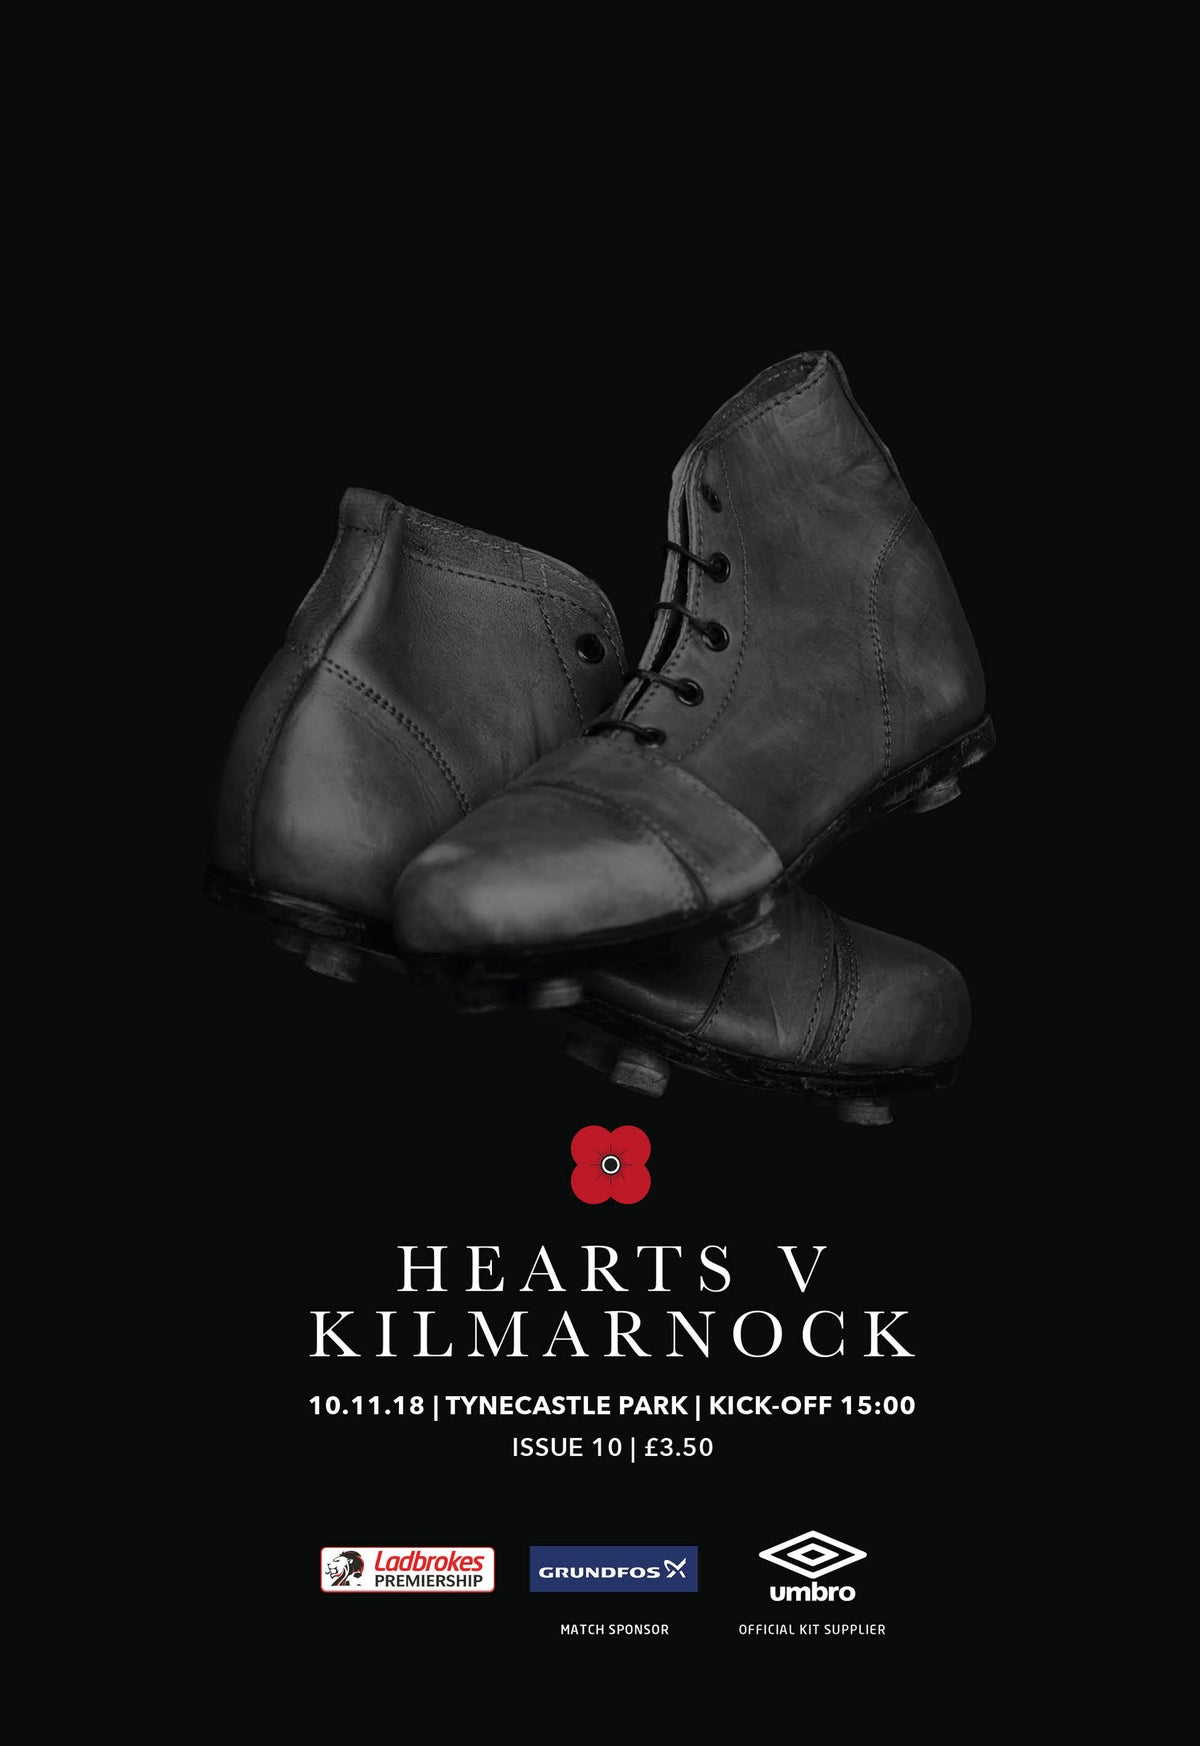 Image of Hearts v Kilmarnock, 10th November 2018